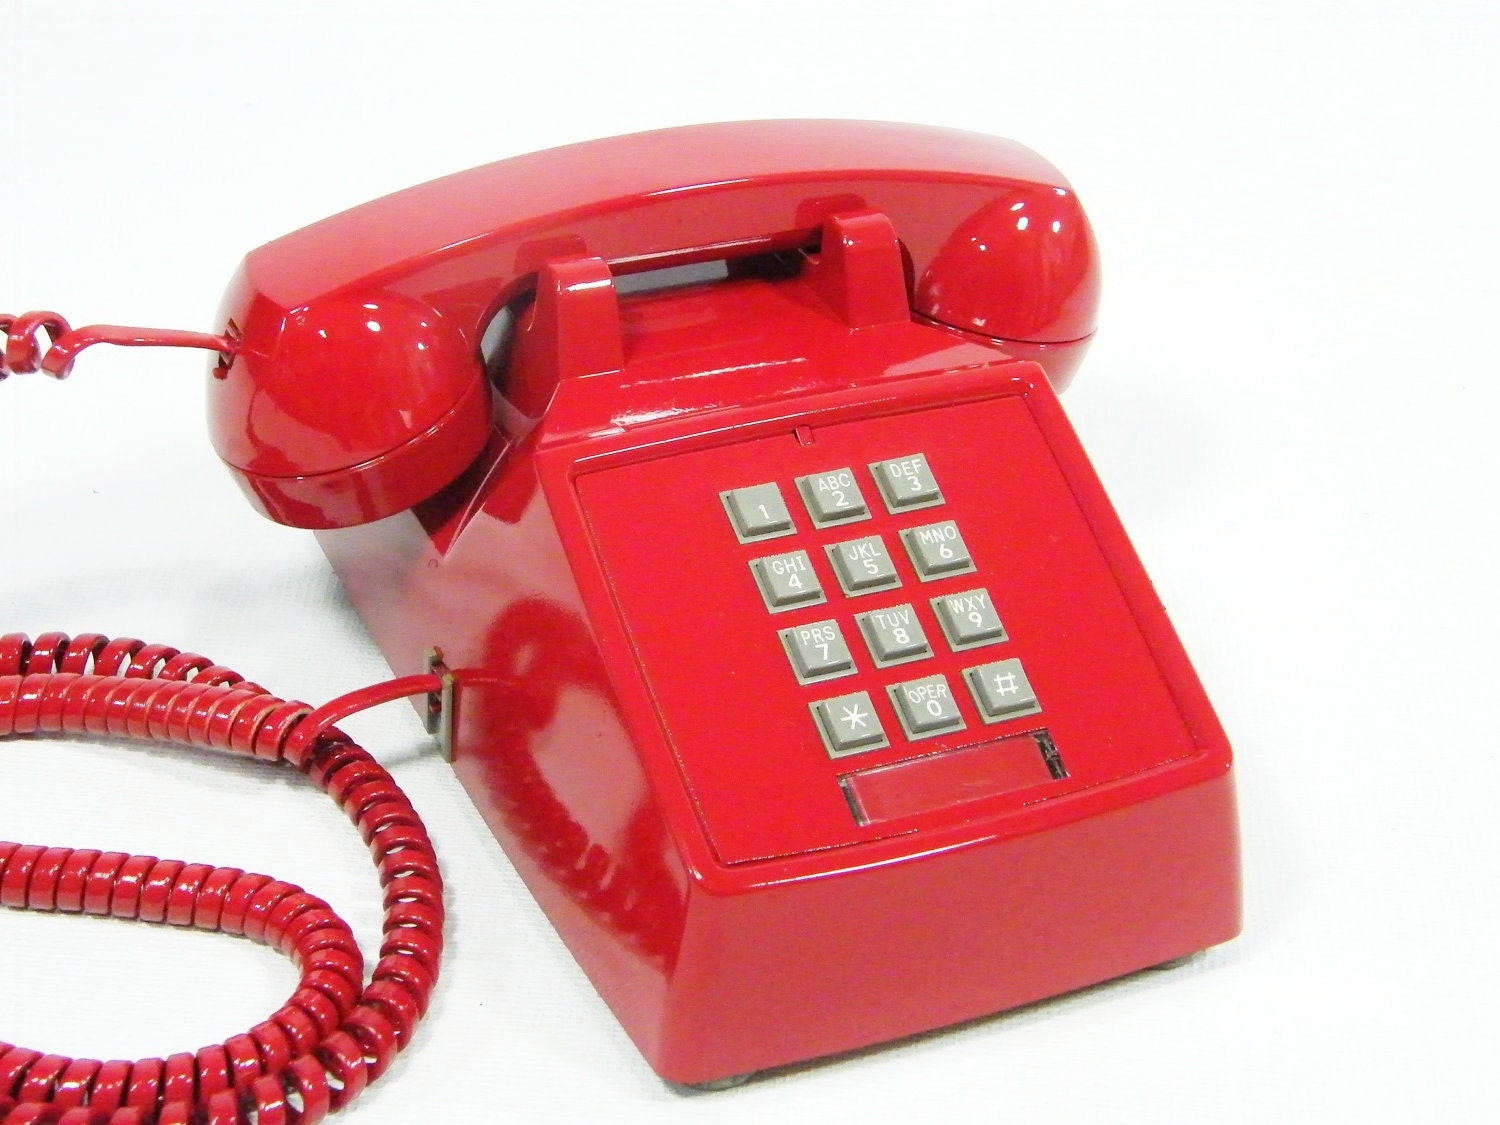 Vintage telephone Cherry Red push button phone by ohiopicker